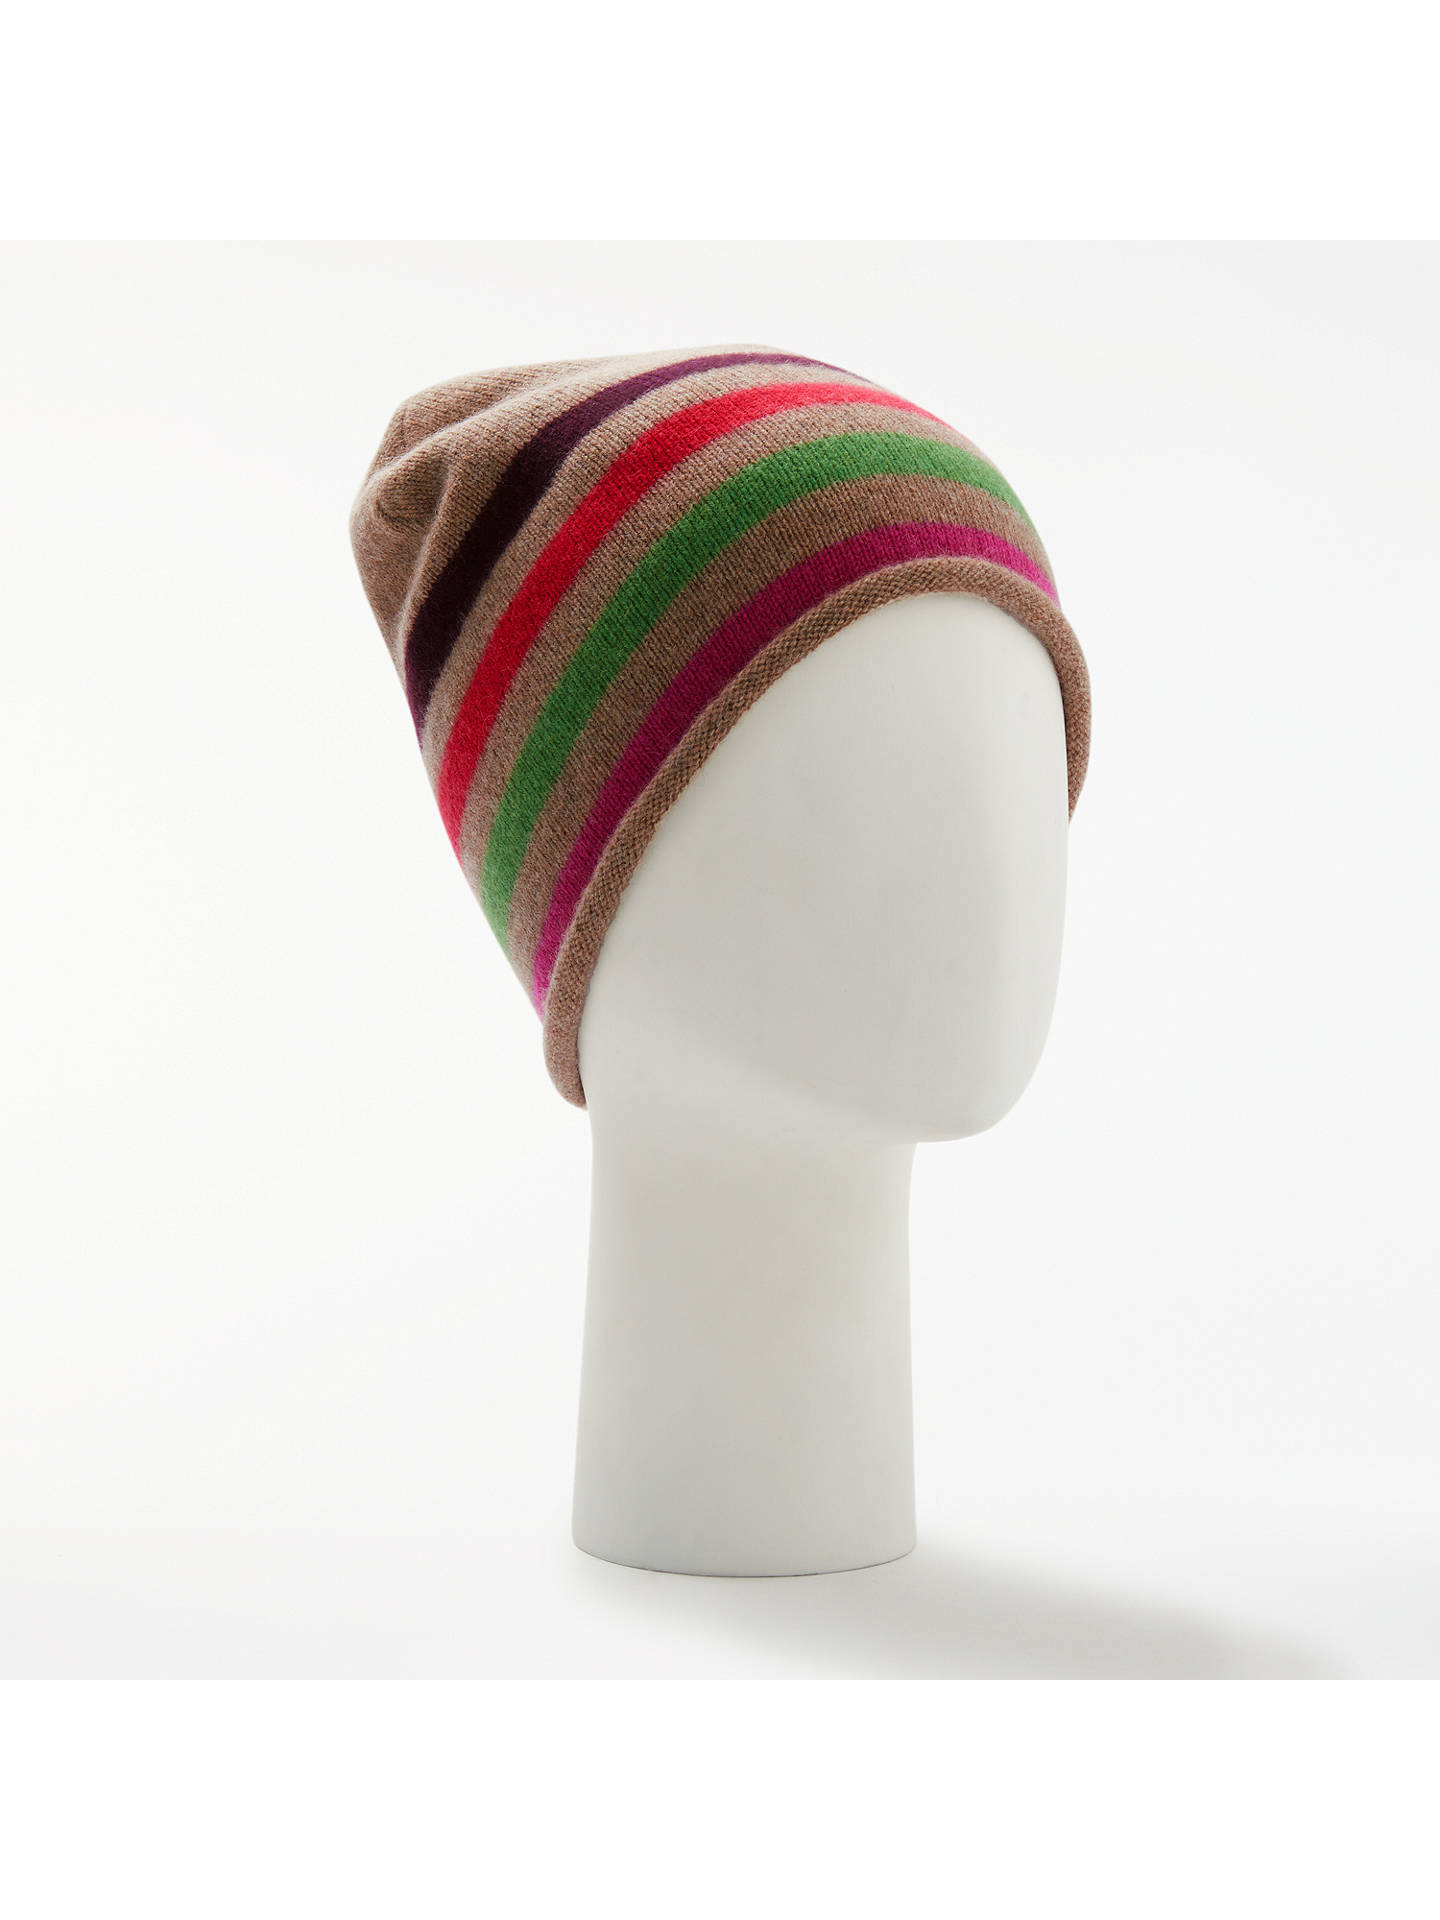 BuyJohn Lewis & Partners Striped Cashmere Roll Beanie Hat, Multi Online at johnlewis.com